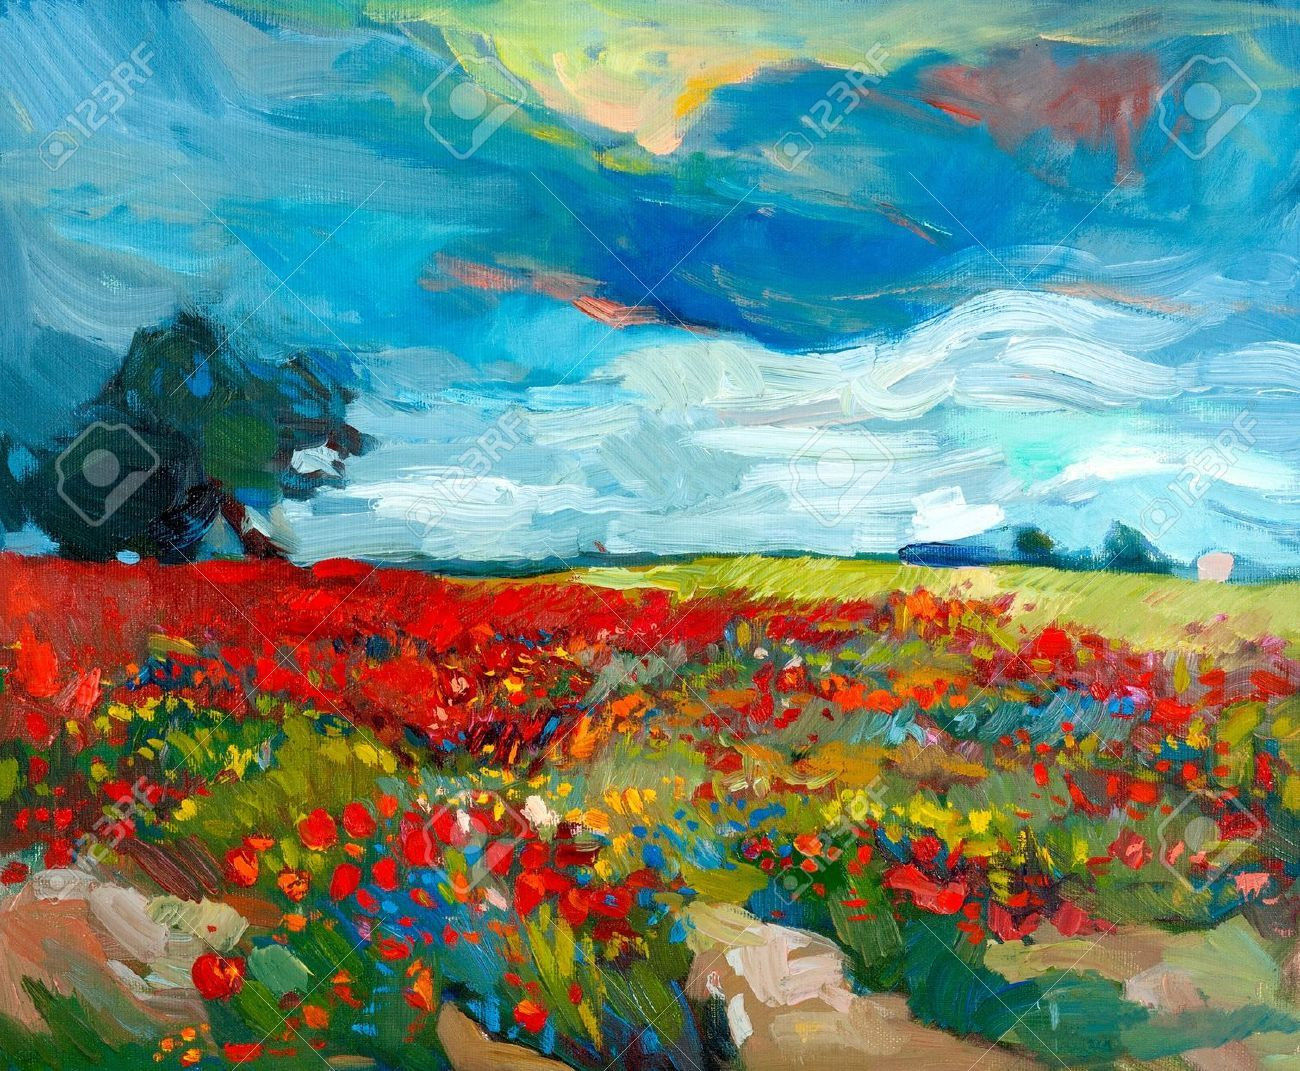 acrylic painting images stock